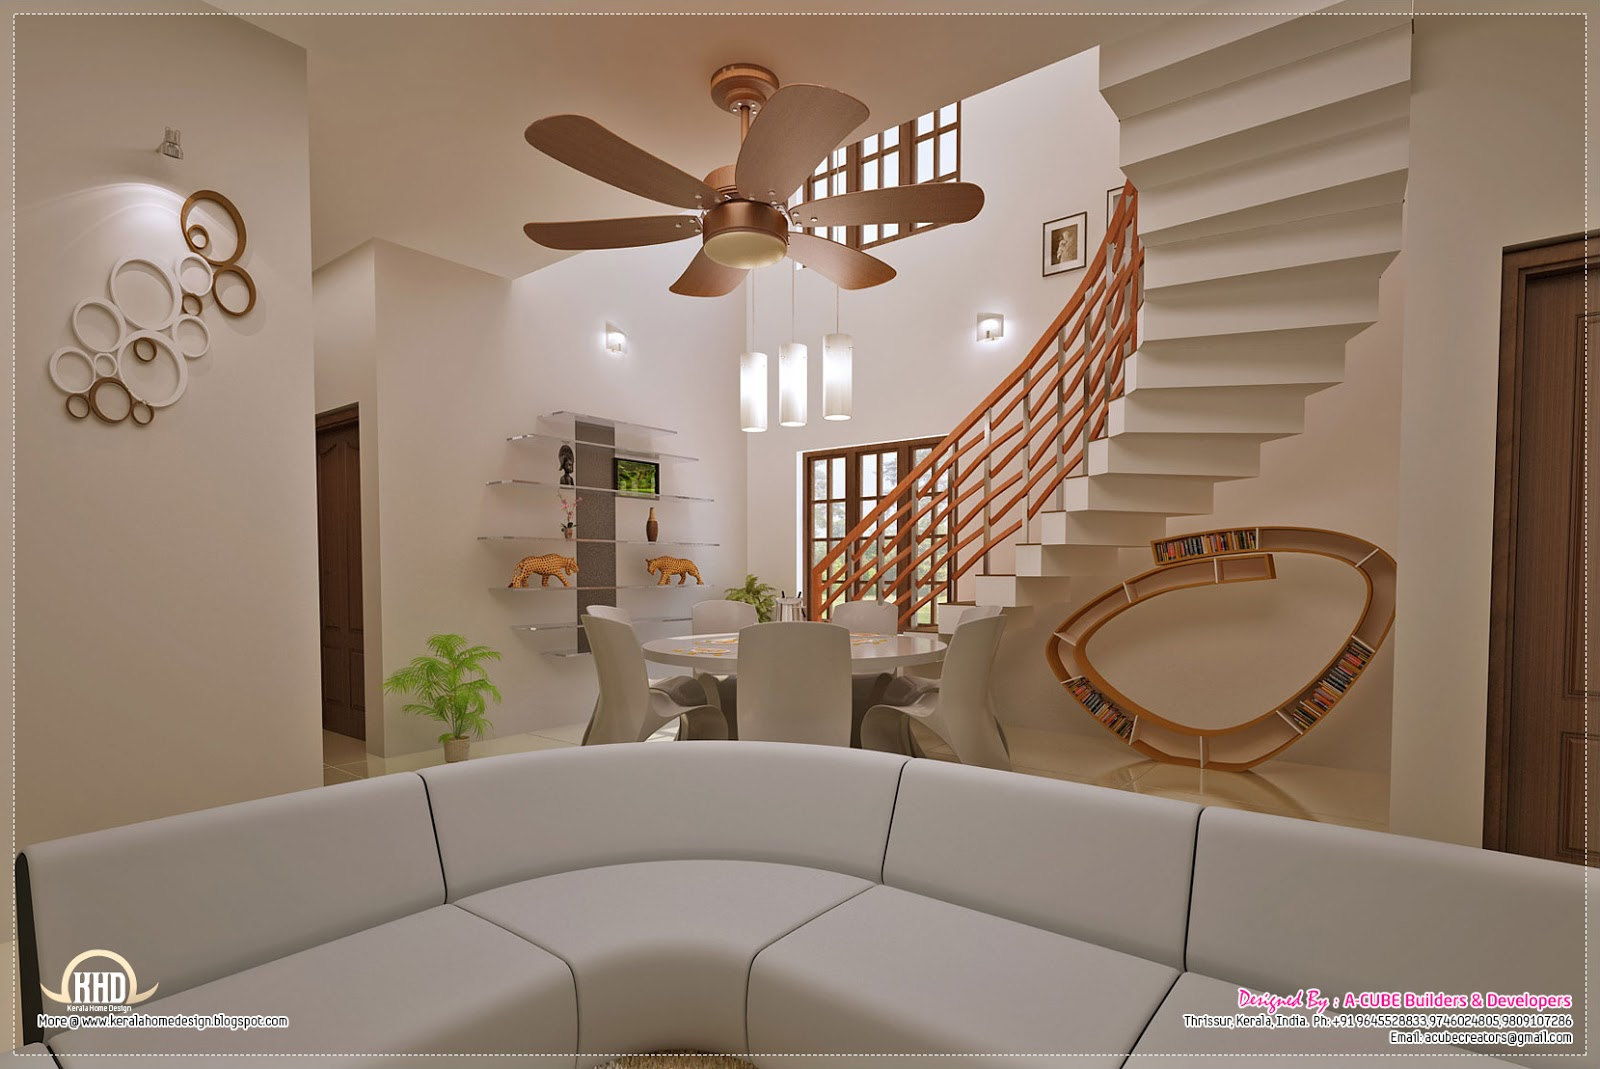 For more information about these beautiful interior renderings